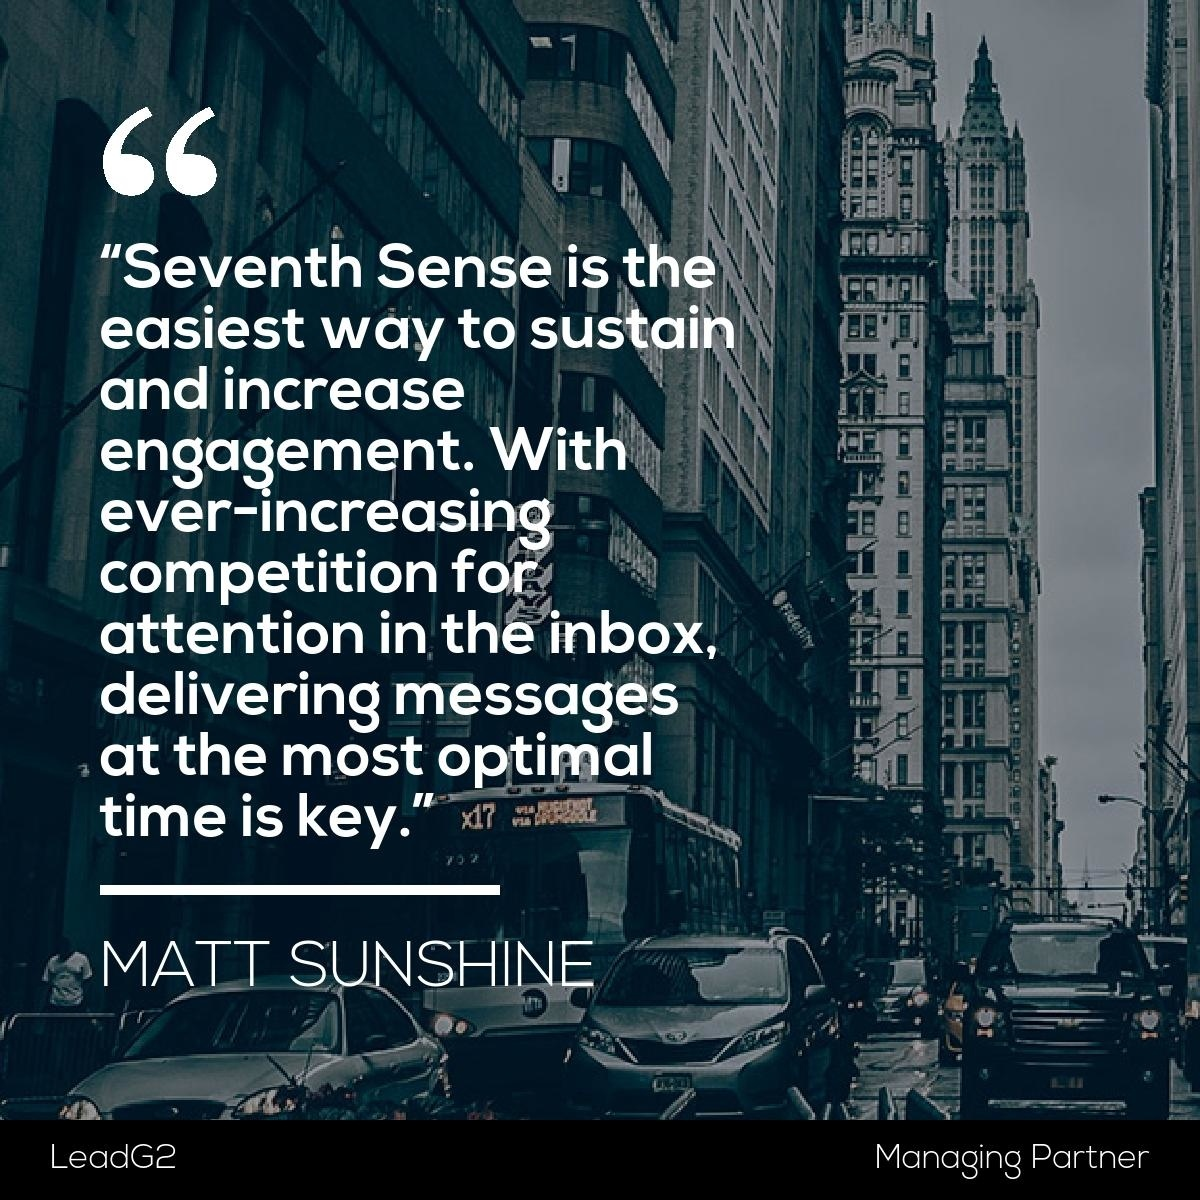 """""""Seventh Sense is the easiest way to sustain and increase engagement. With ever-increasing competition for attention in the inbox, delivering messages at the most optimal time is key."""" -Matt Sunshine,Managing Partner,LeadG2 (Platinum Hubspot Agency Partner)"""